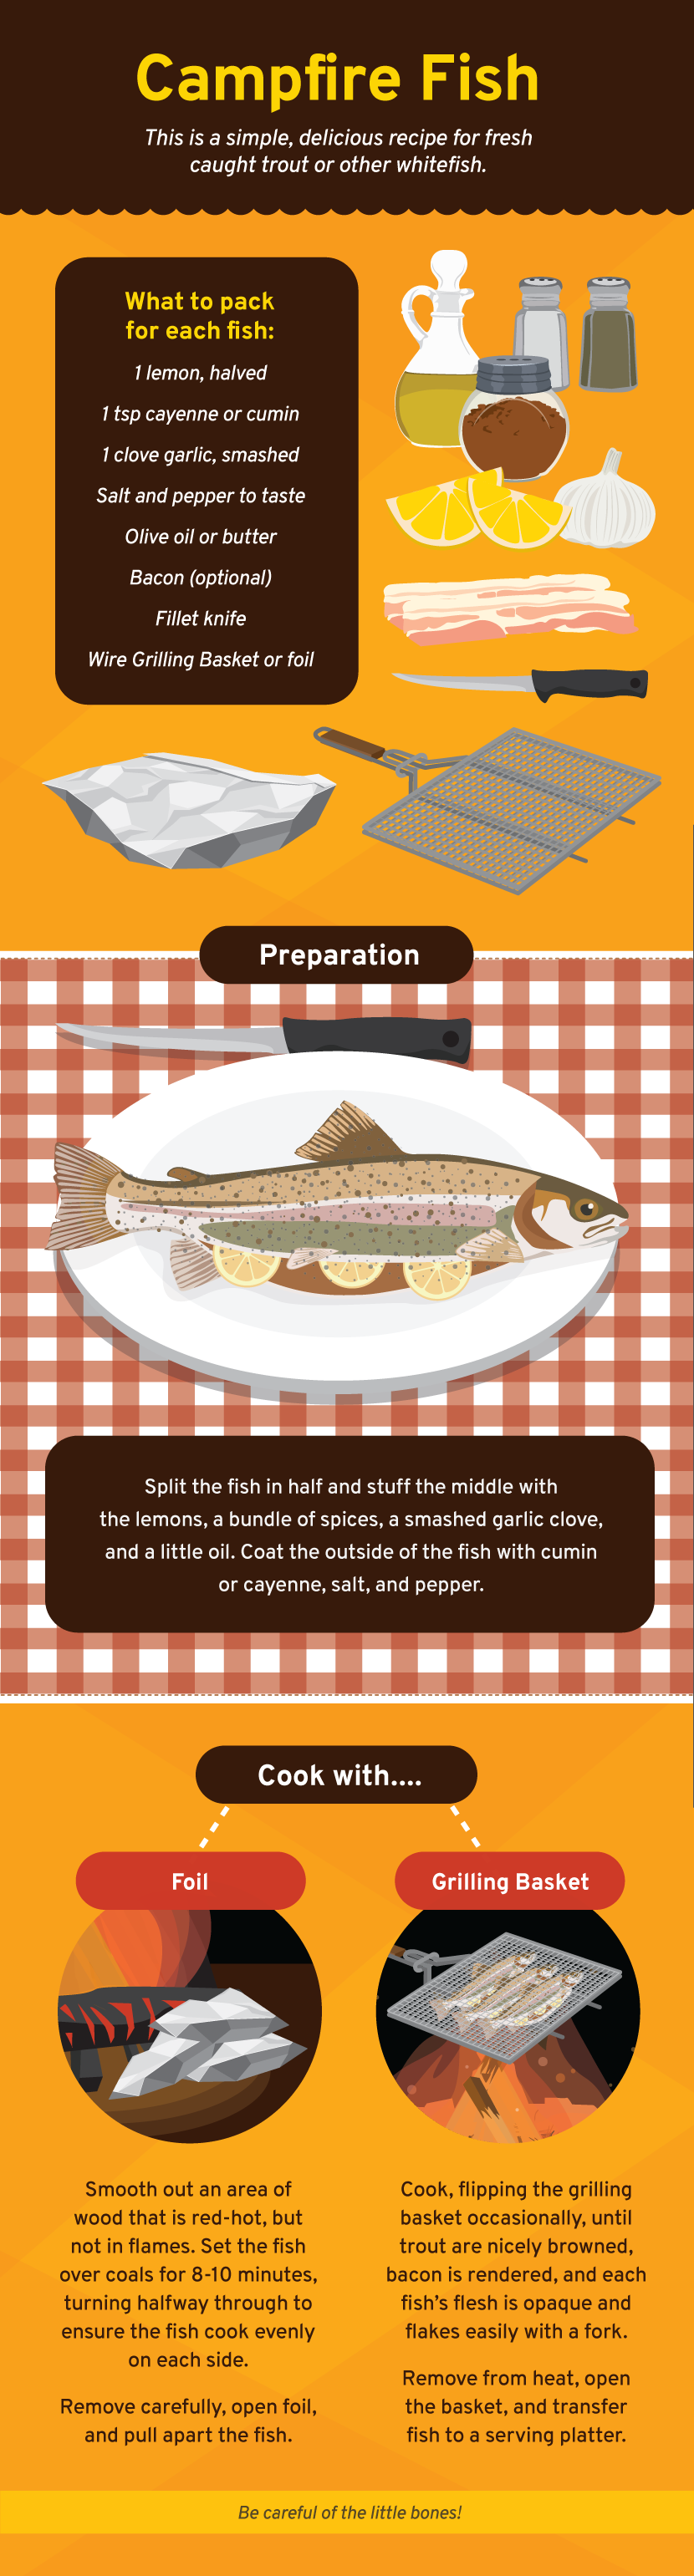 Campfire Fish - Cooking on a Campfire